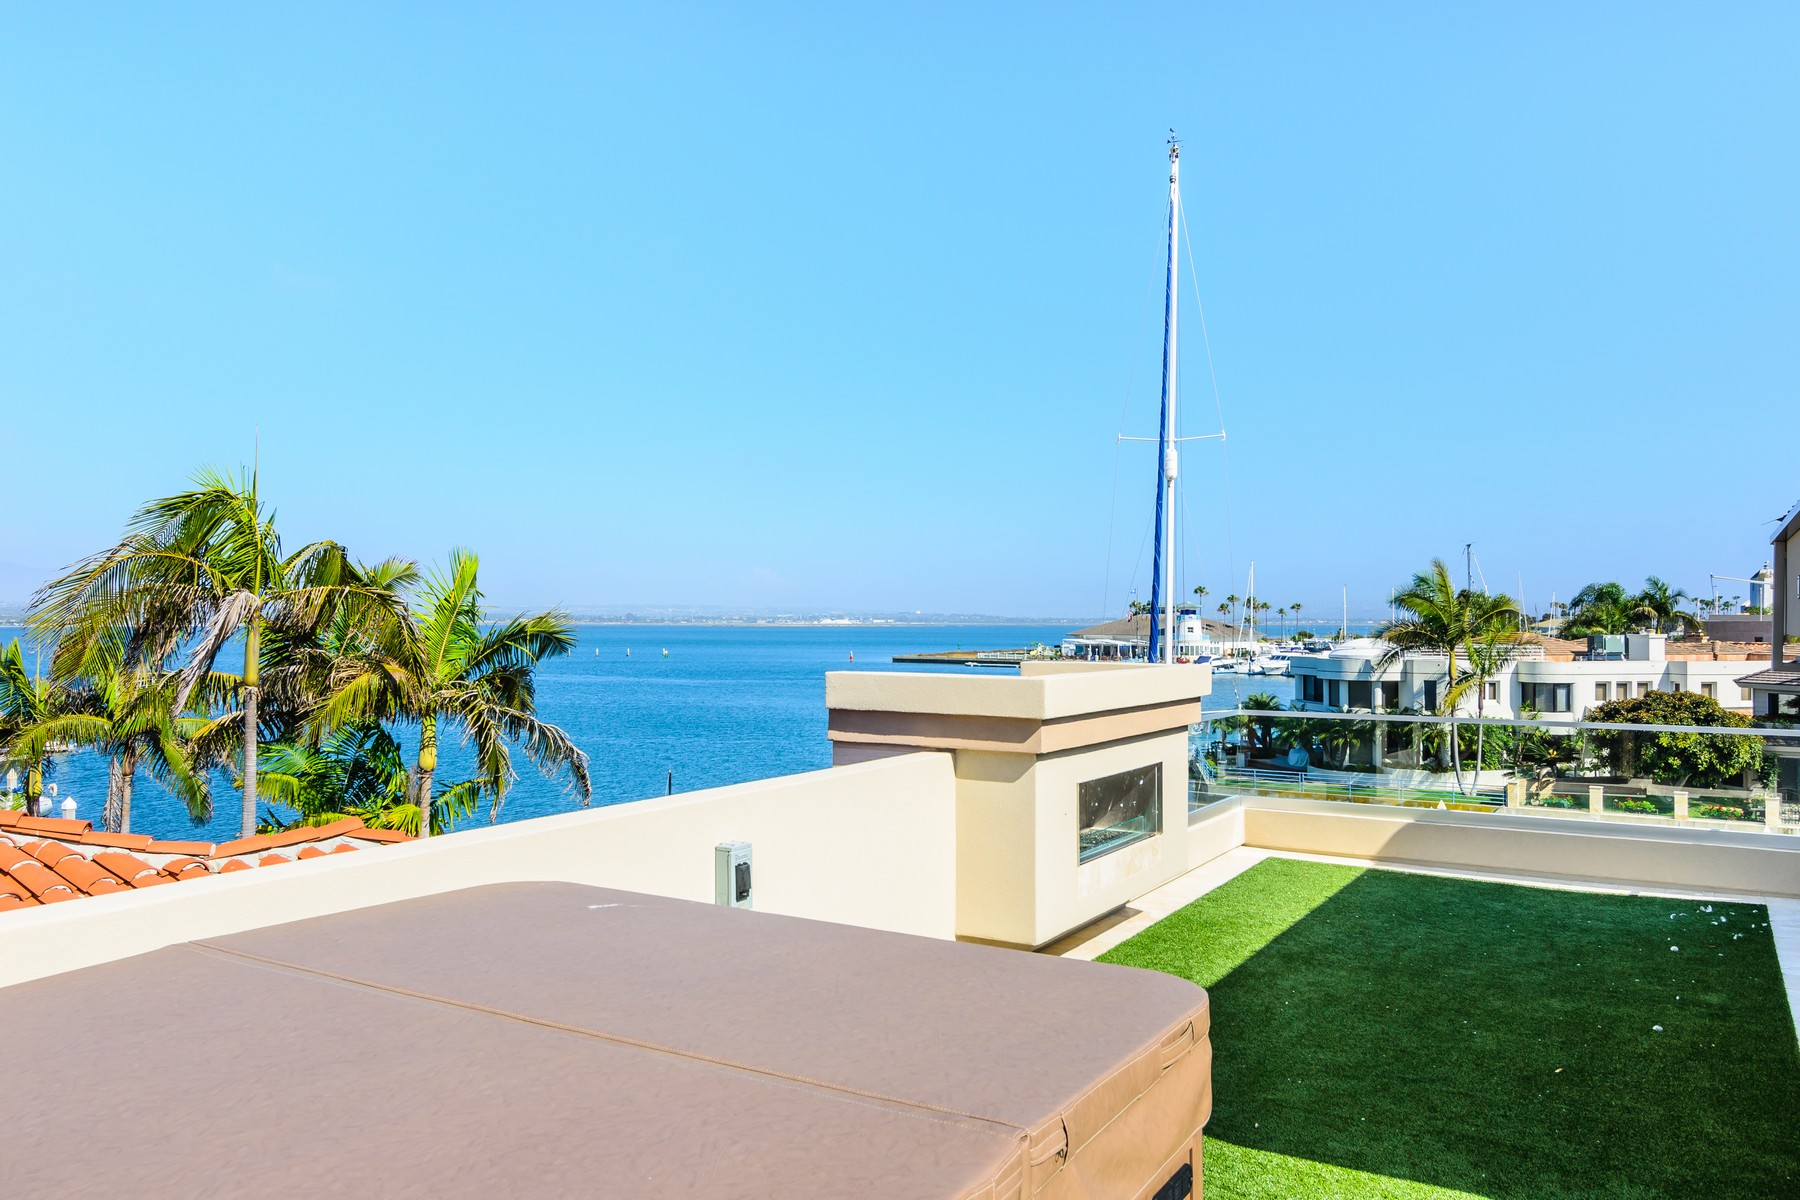 Additional photo for property listing at 16 The Point  Coronado, California 92118 Estados Unidos